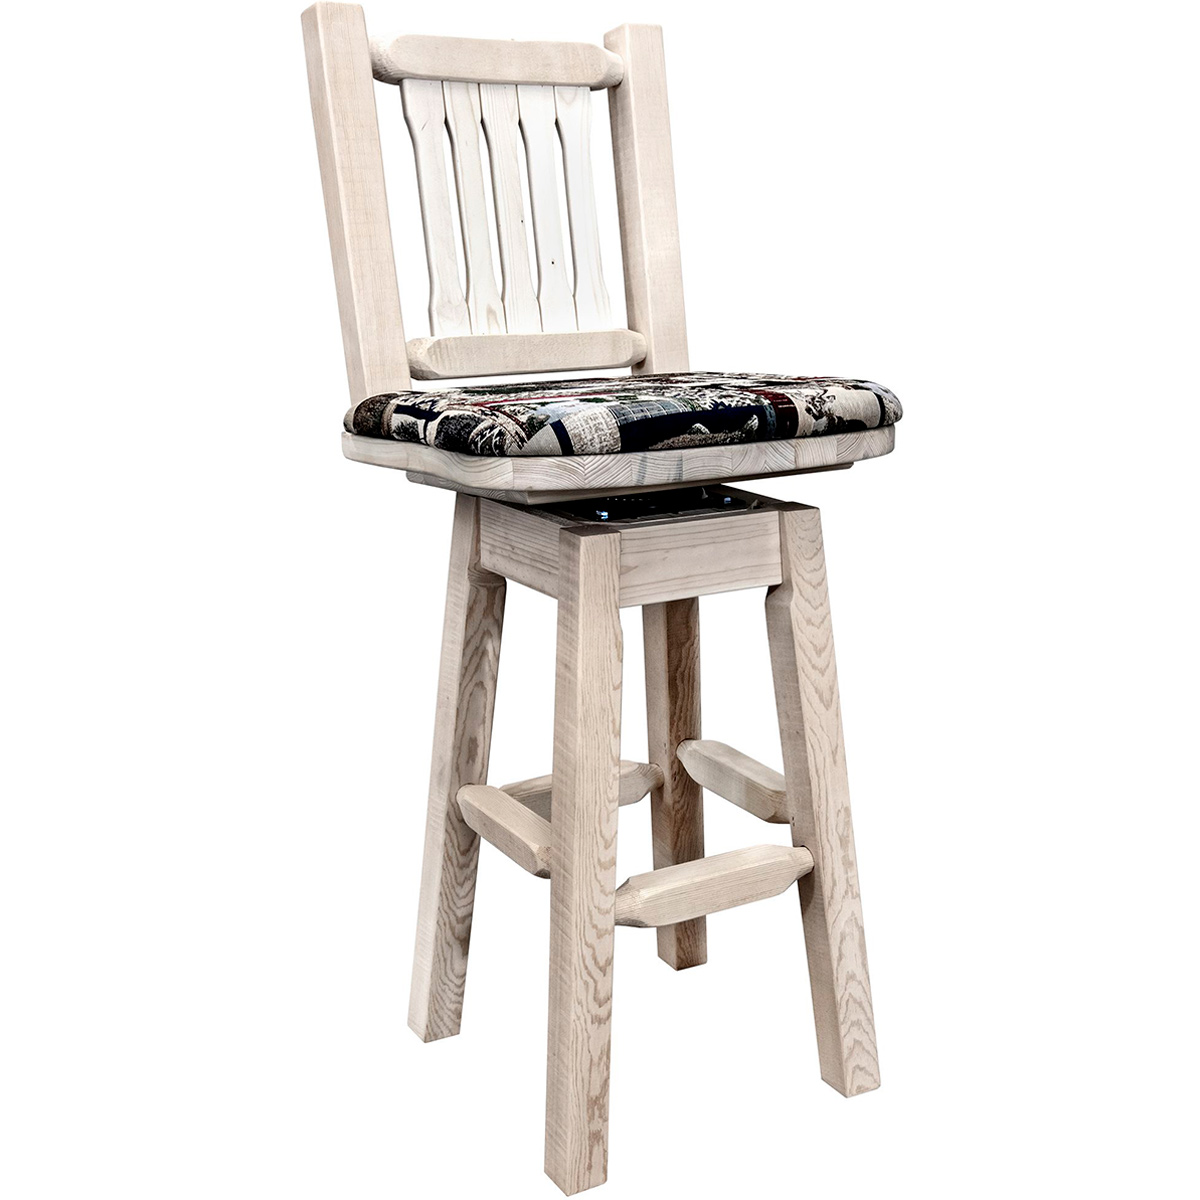 Ranchman's Barstool with Back, Swivel, Woodland Upholstered Seat & Clear Lacquer Finish